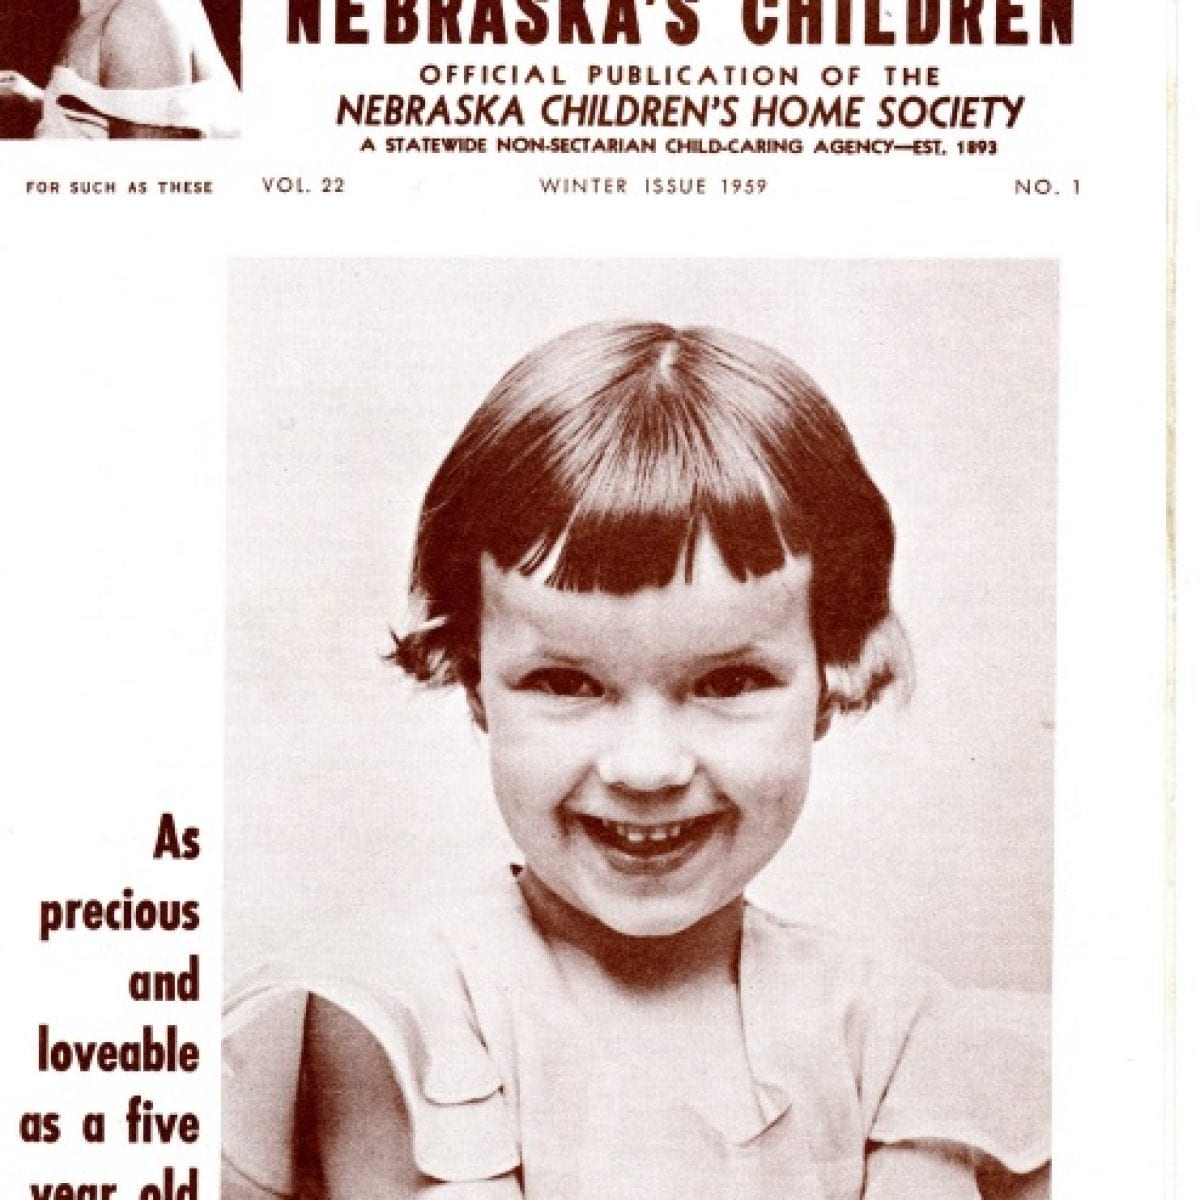 1938 – Nebraska's Children magazine publication replaces The Advocate